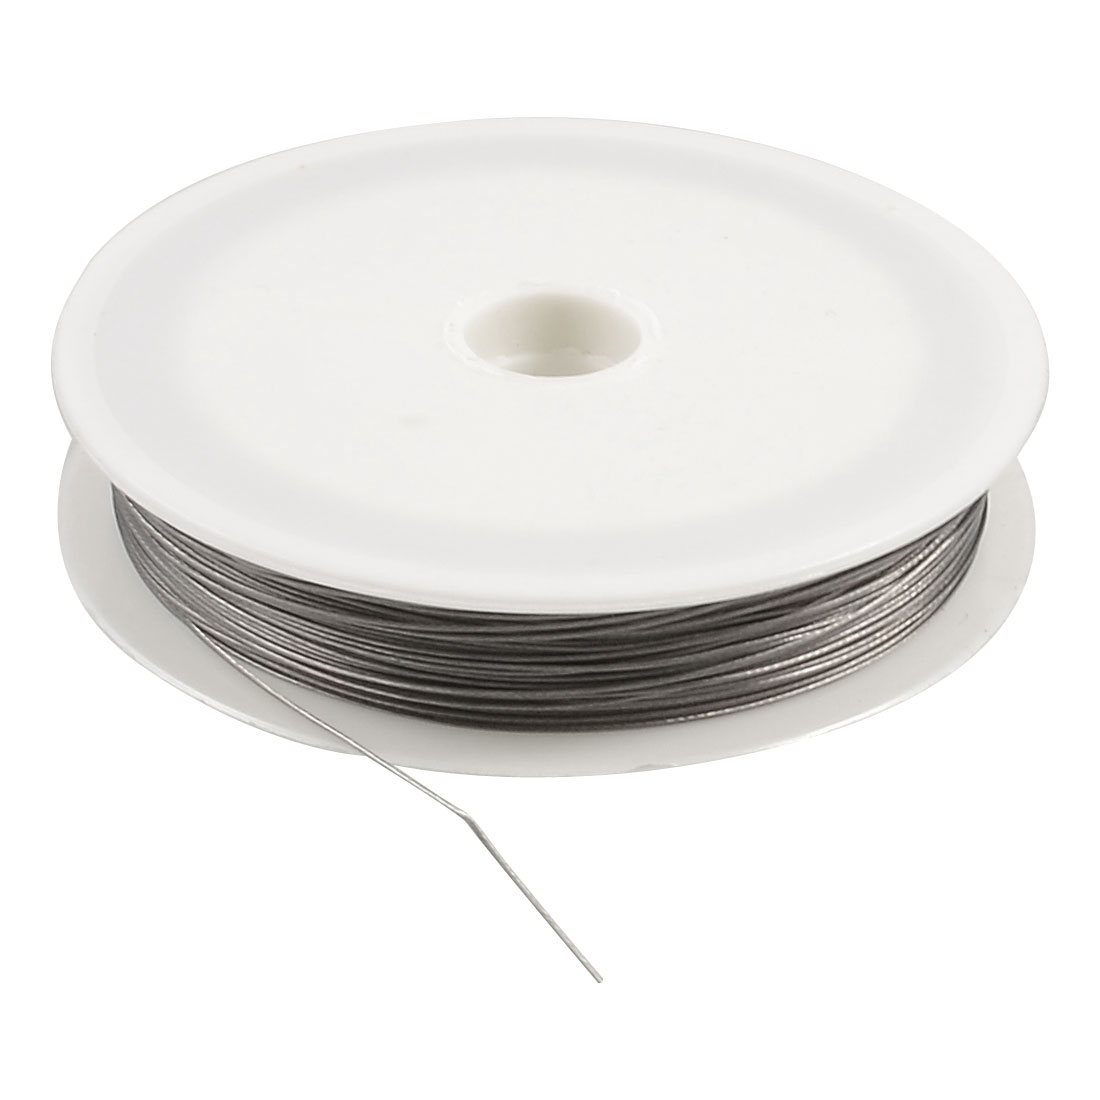 0.45mm Diameter 20m Long Gray Steel String Fishing Line Spool